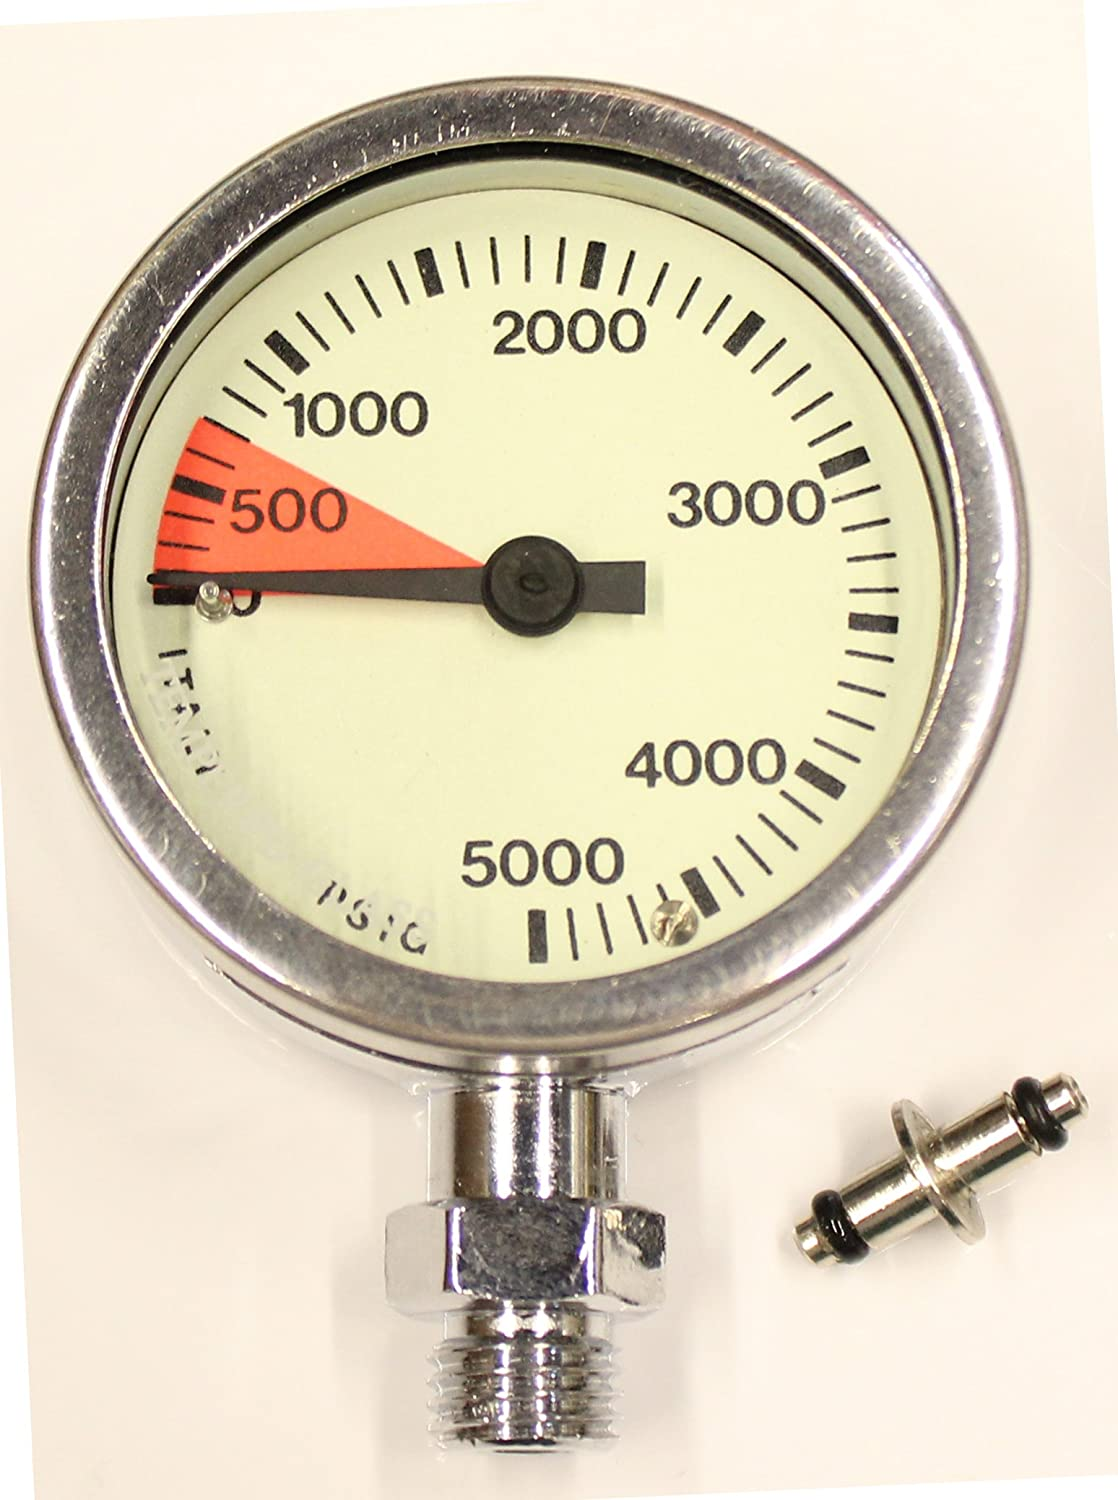 SOPRAS SUB PLATED TEK BRASS SPG IMPERIAL PRESSURE GAUGE PSI 2 INCH Chrome plated